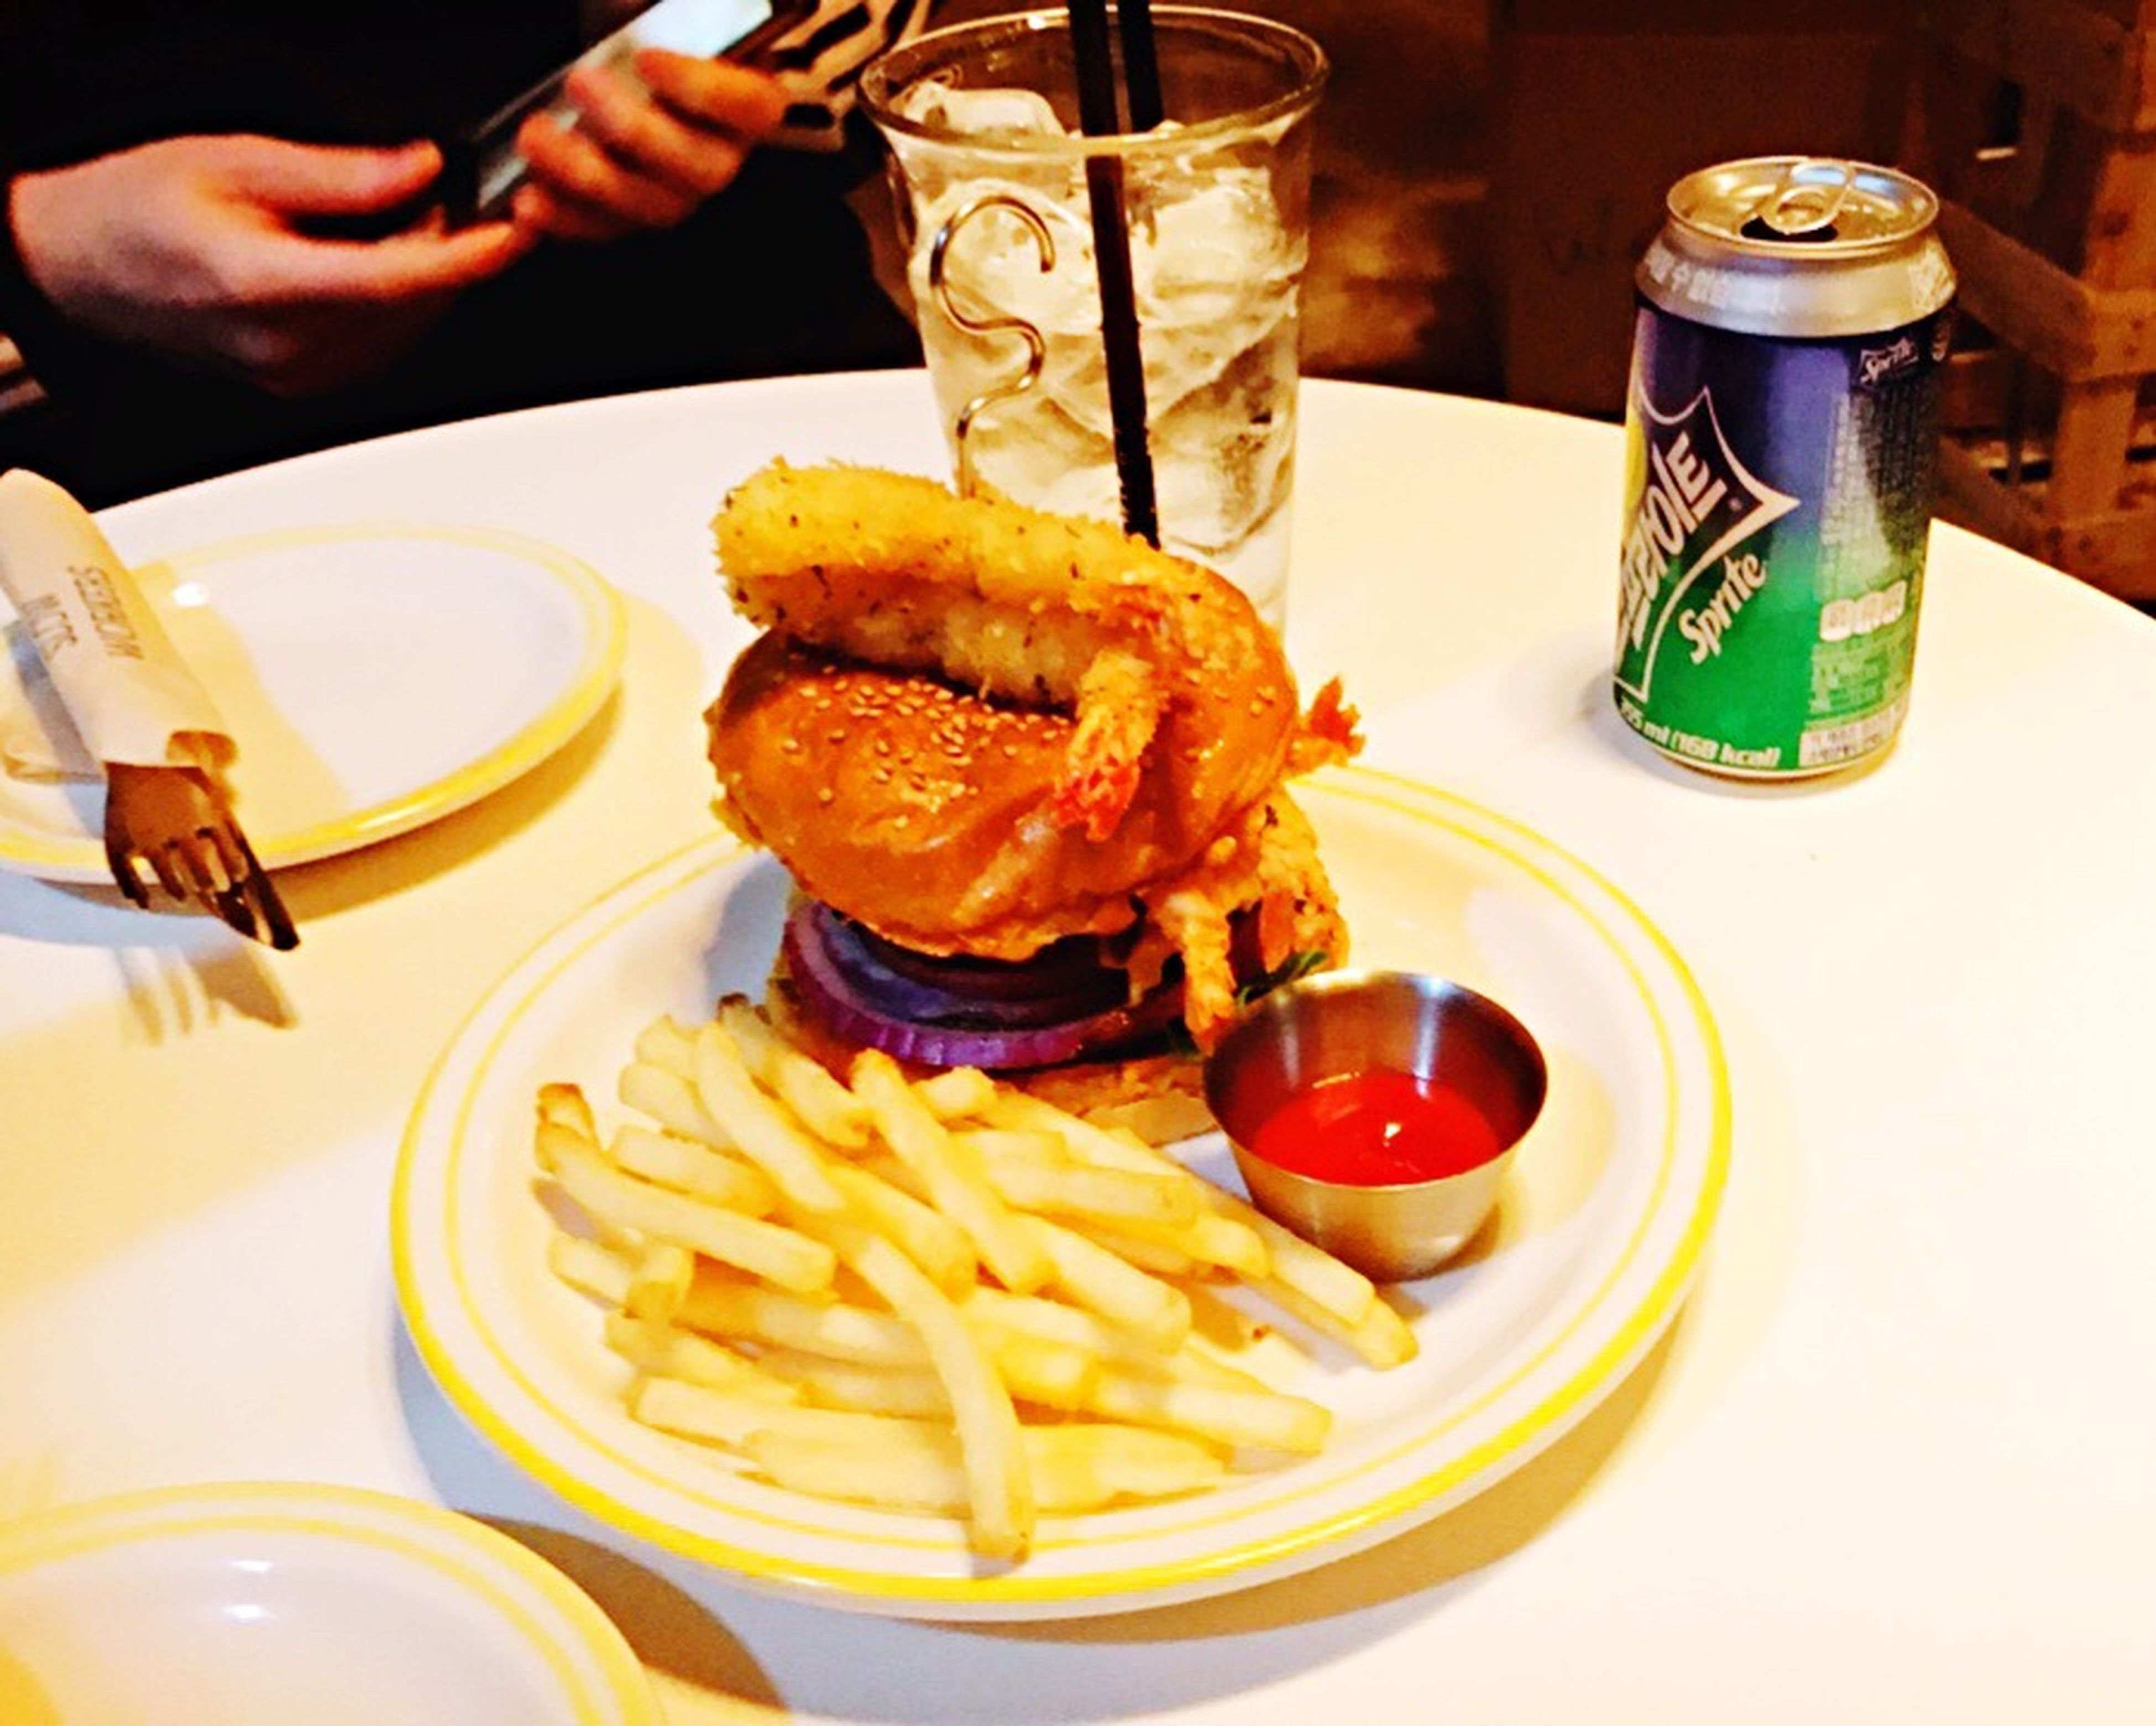 food and drink, unhealthy eating, french fries, food, plate, table, ready-to-eat, deep fried, indulgence, prepared potato, adults only, drink, freshness, people, indoors, one person, close-up, fast food, human body part, human hand, adult, day